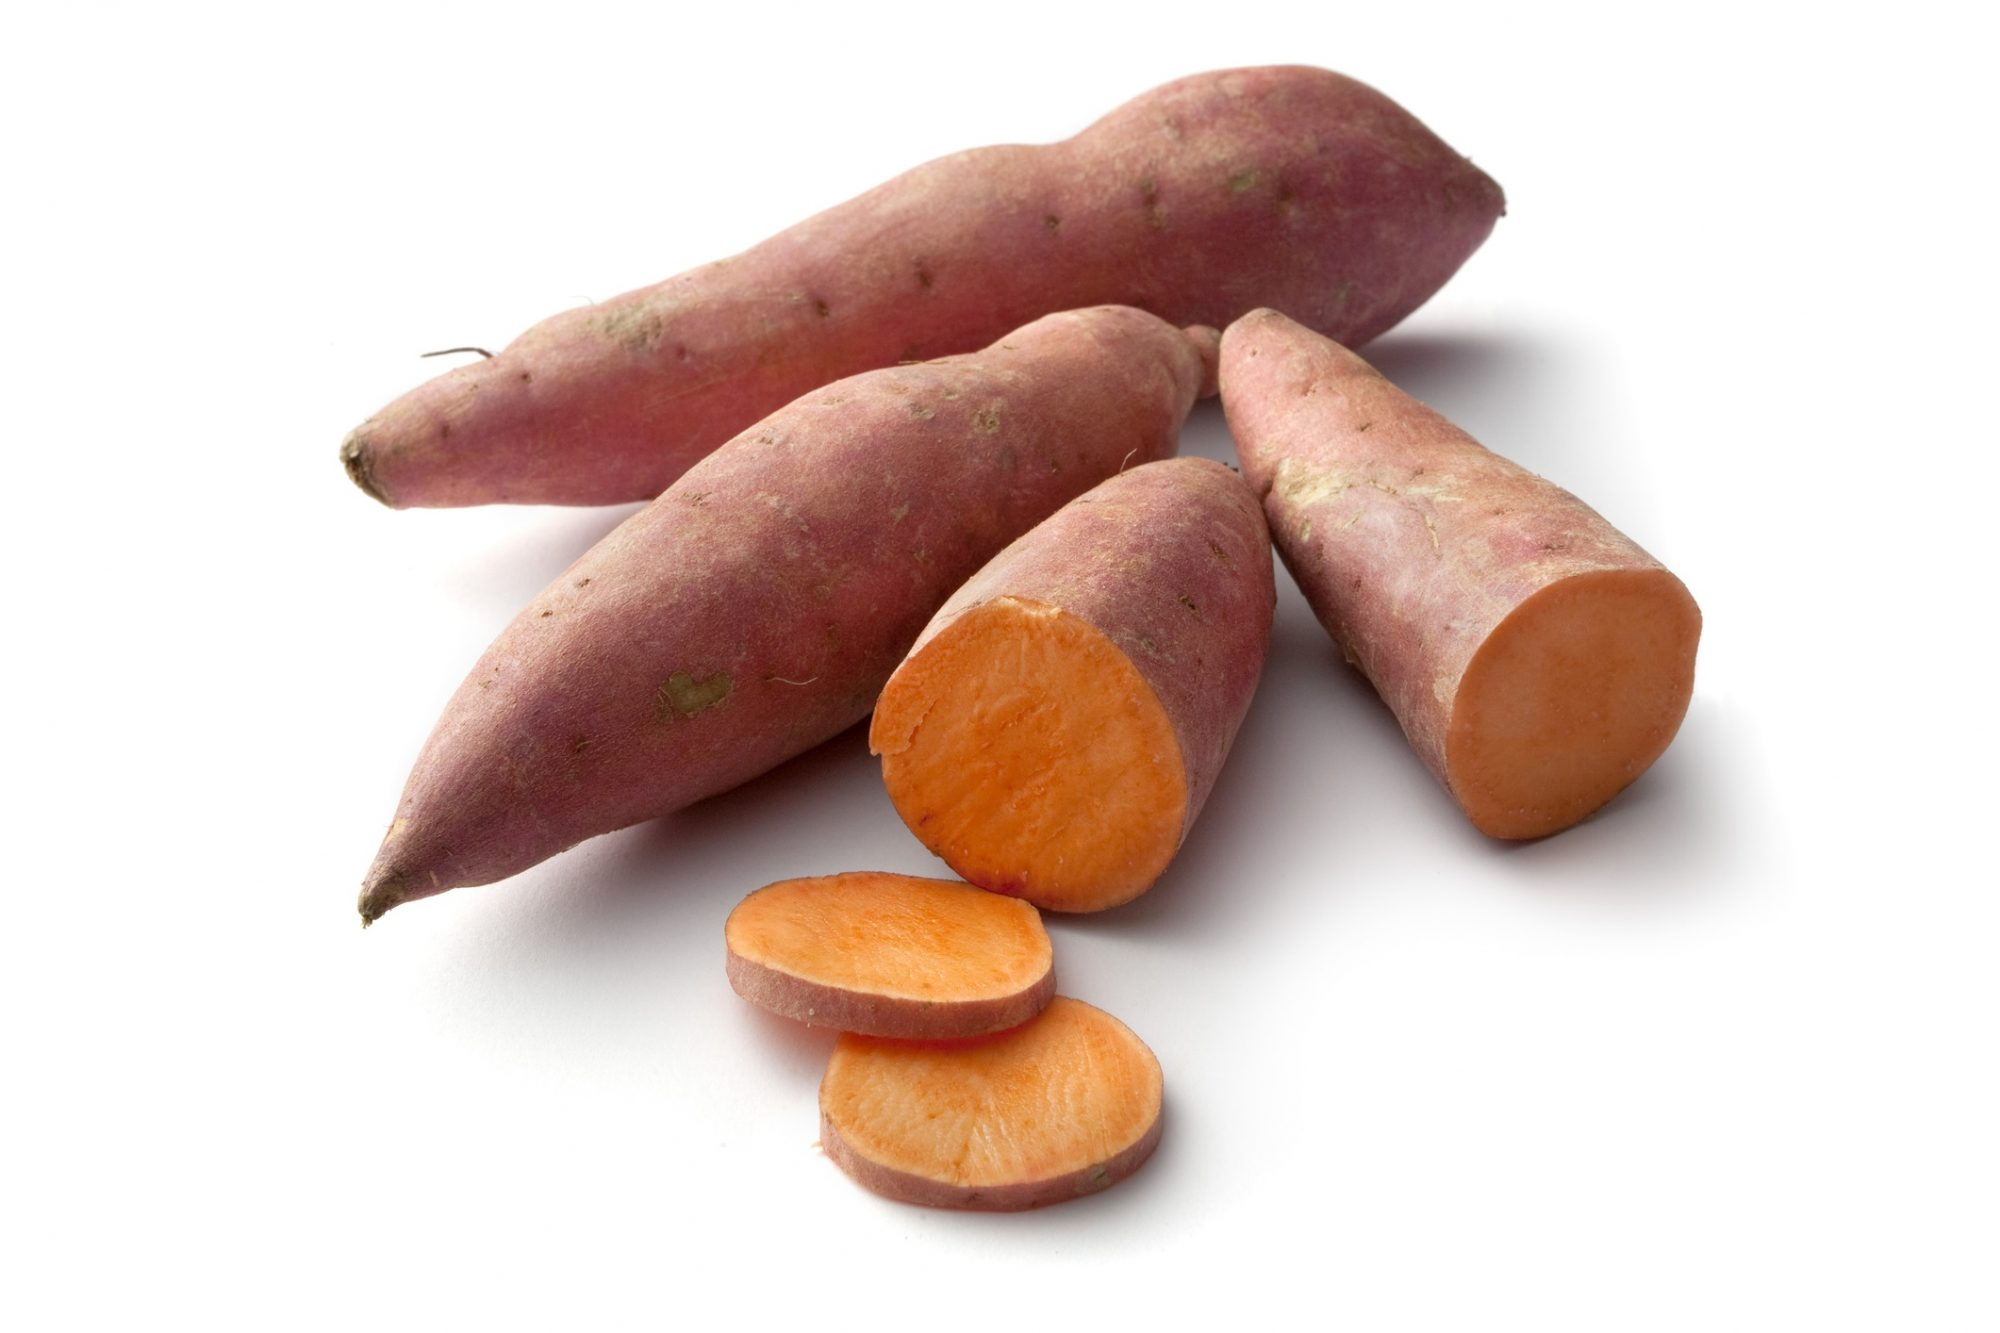 raw sweet potatoes whole and sliced